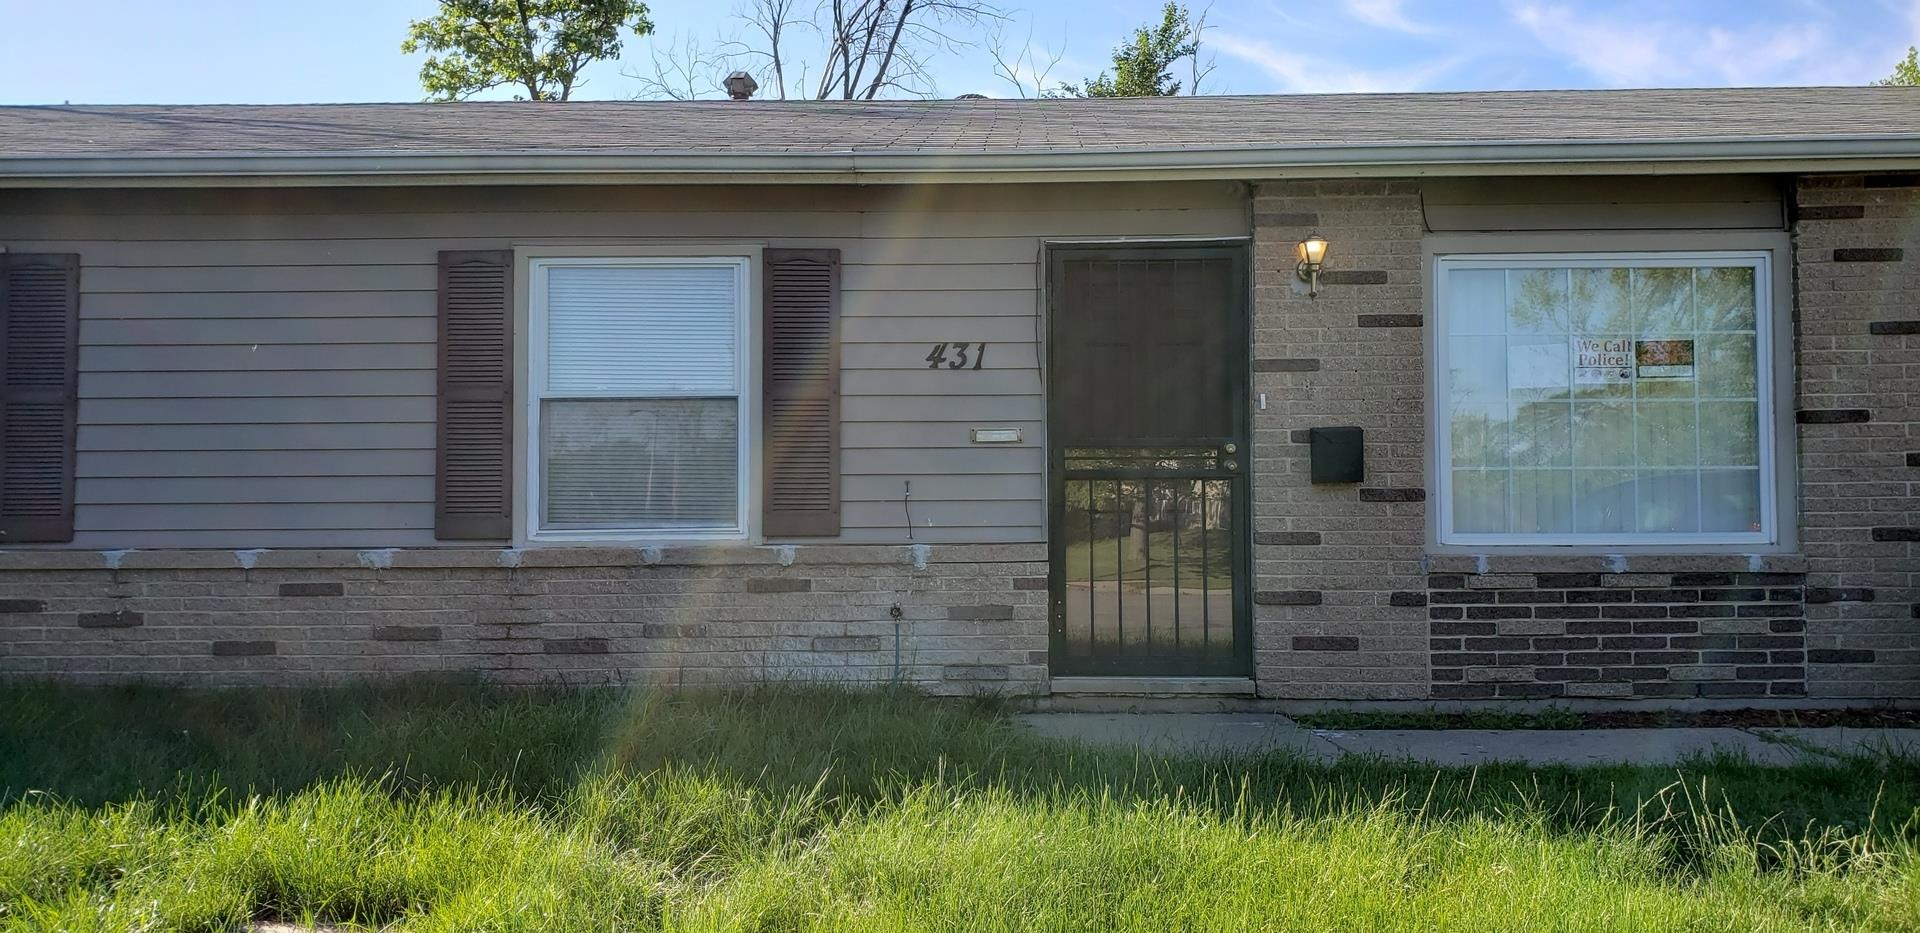 431 Lawrence Avenue, Chicago Heights, IL 60411 - #: 10922306